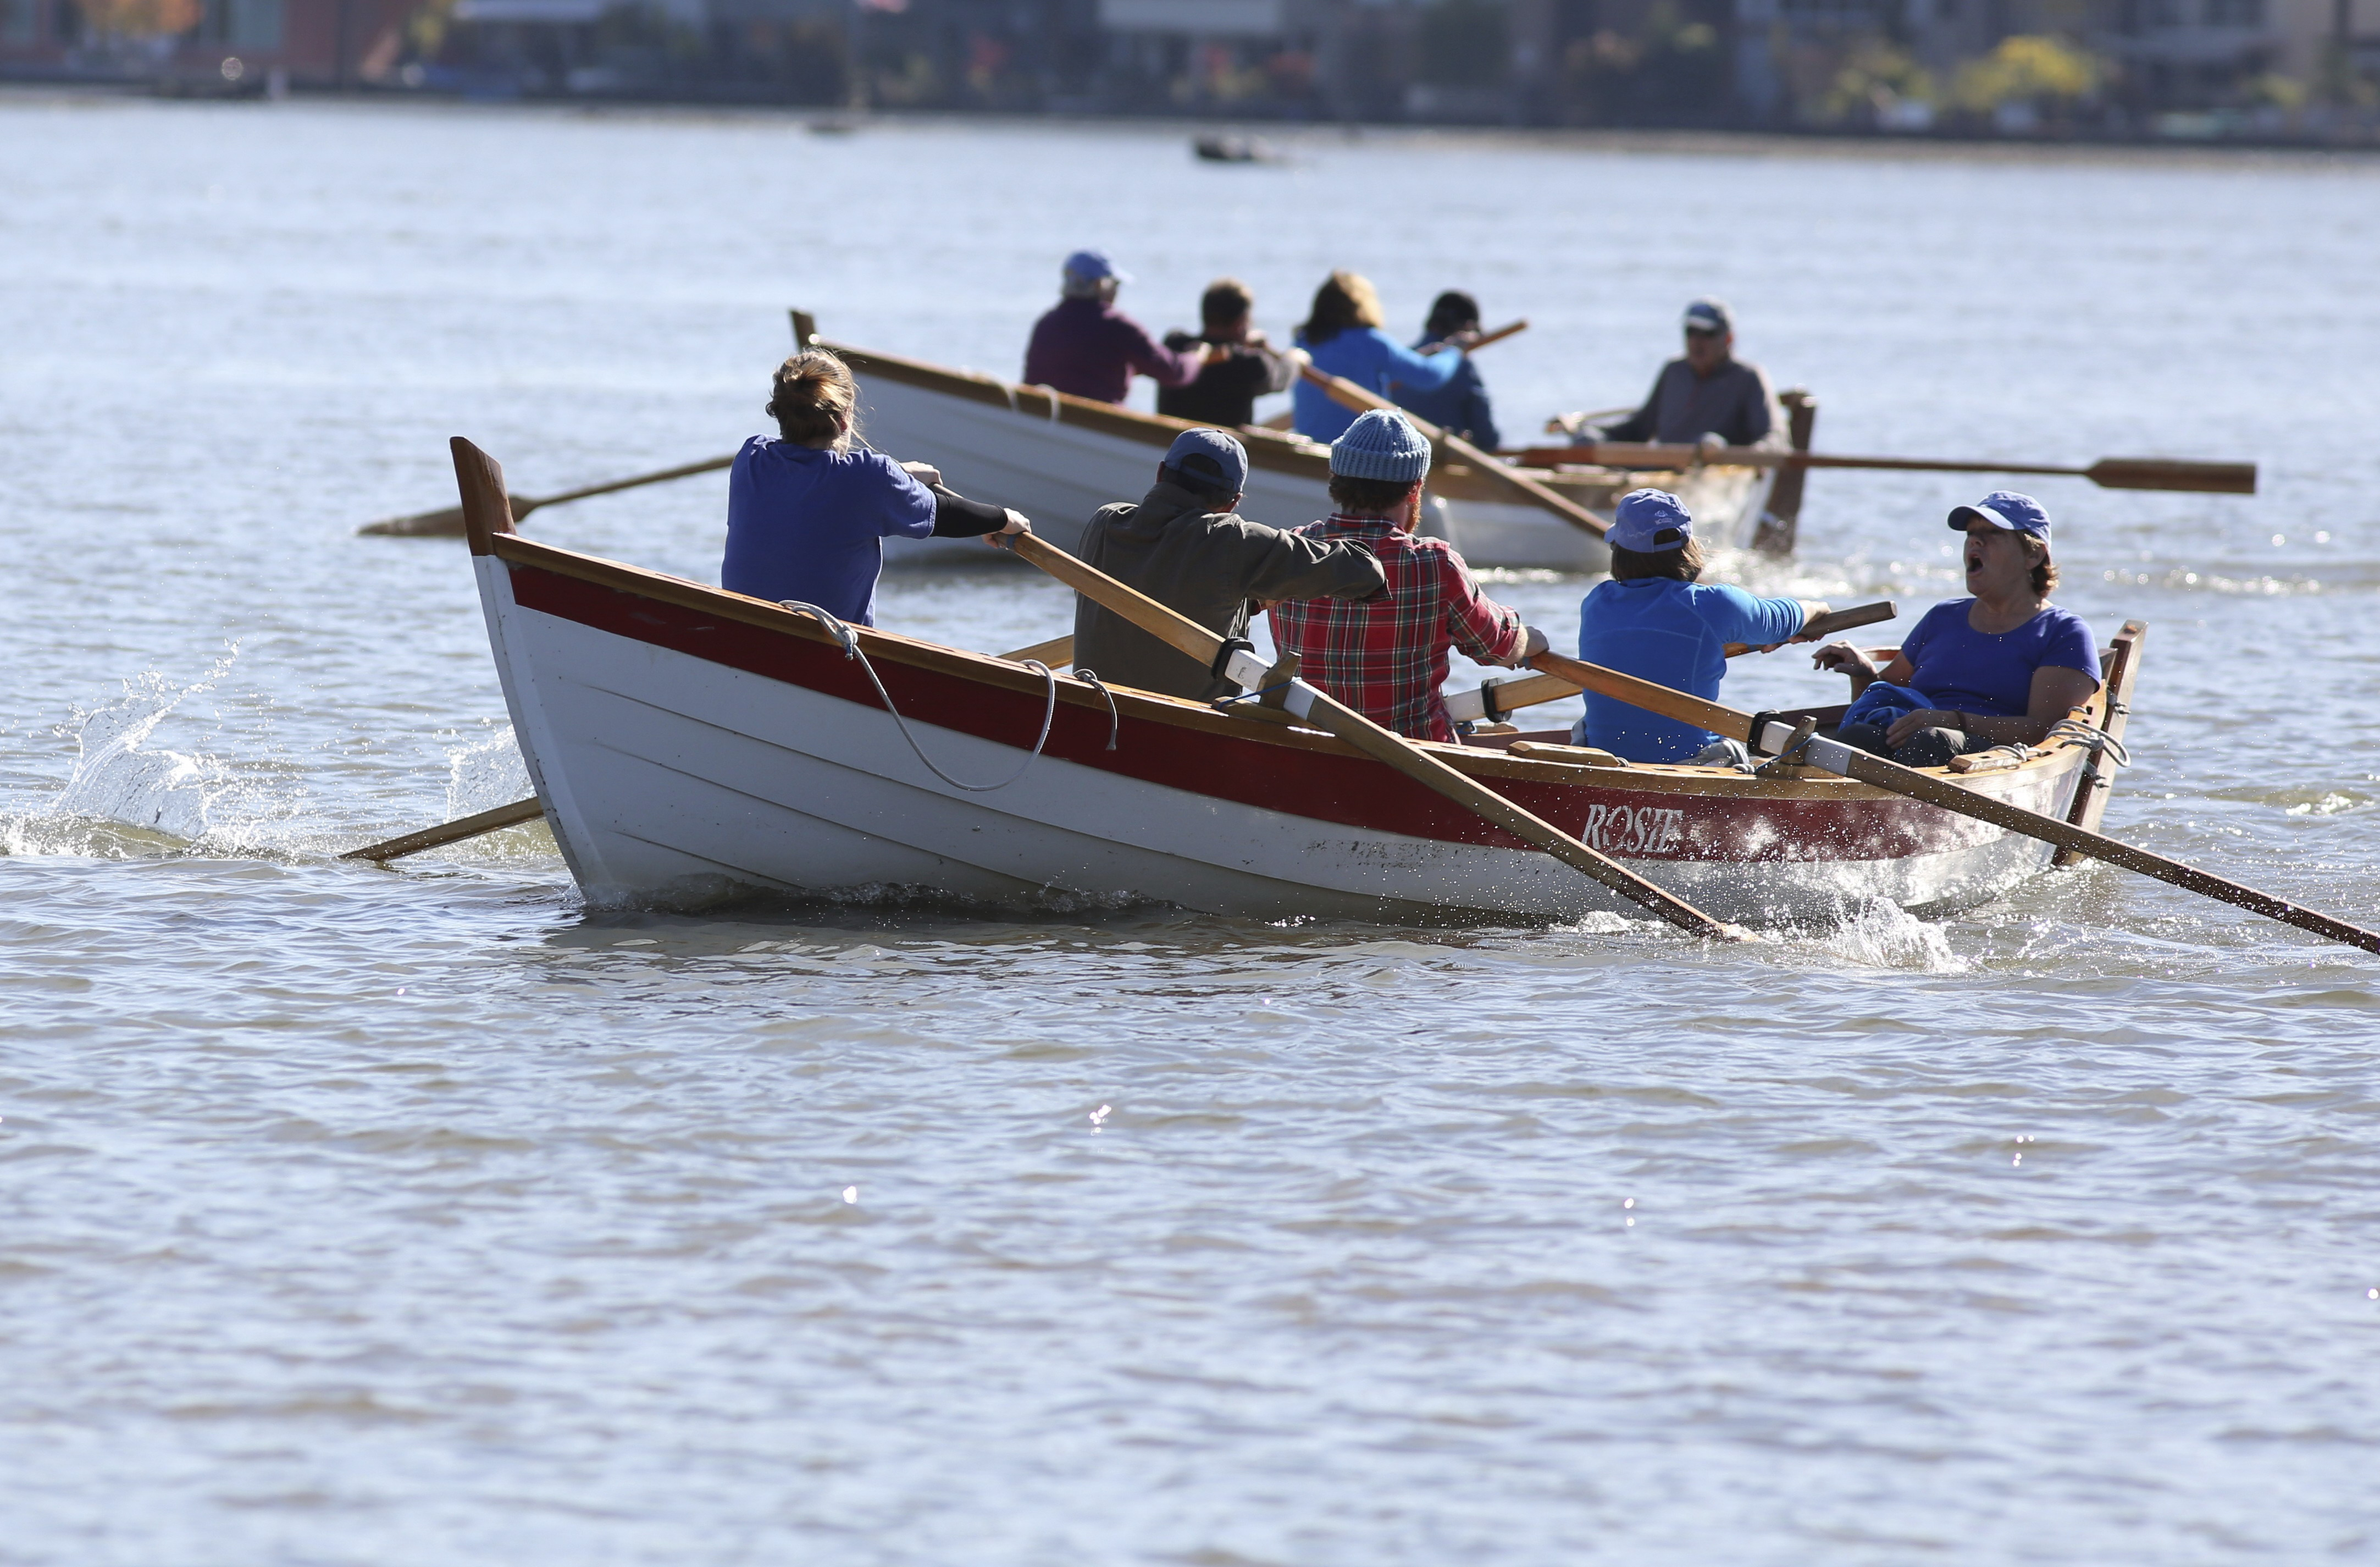 St Ayles racing on Willamette